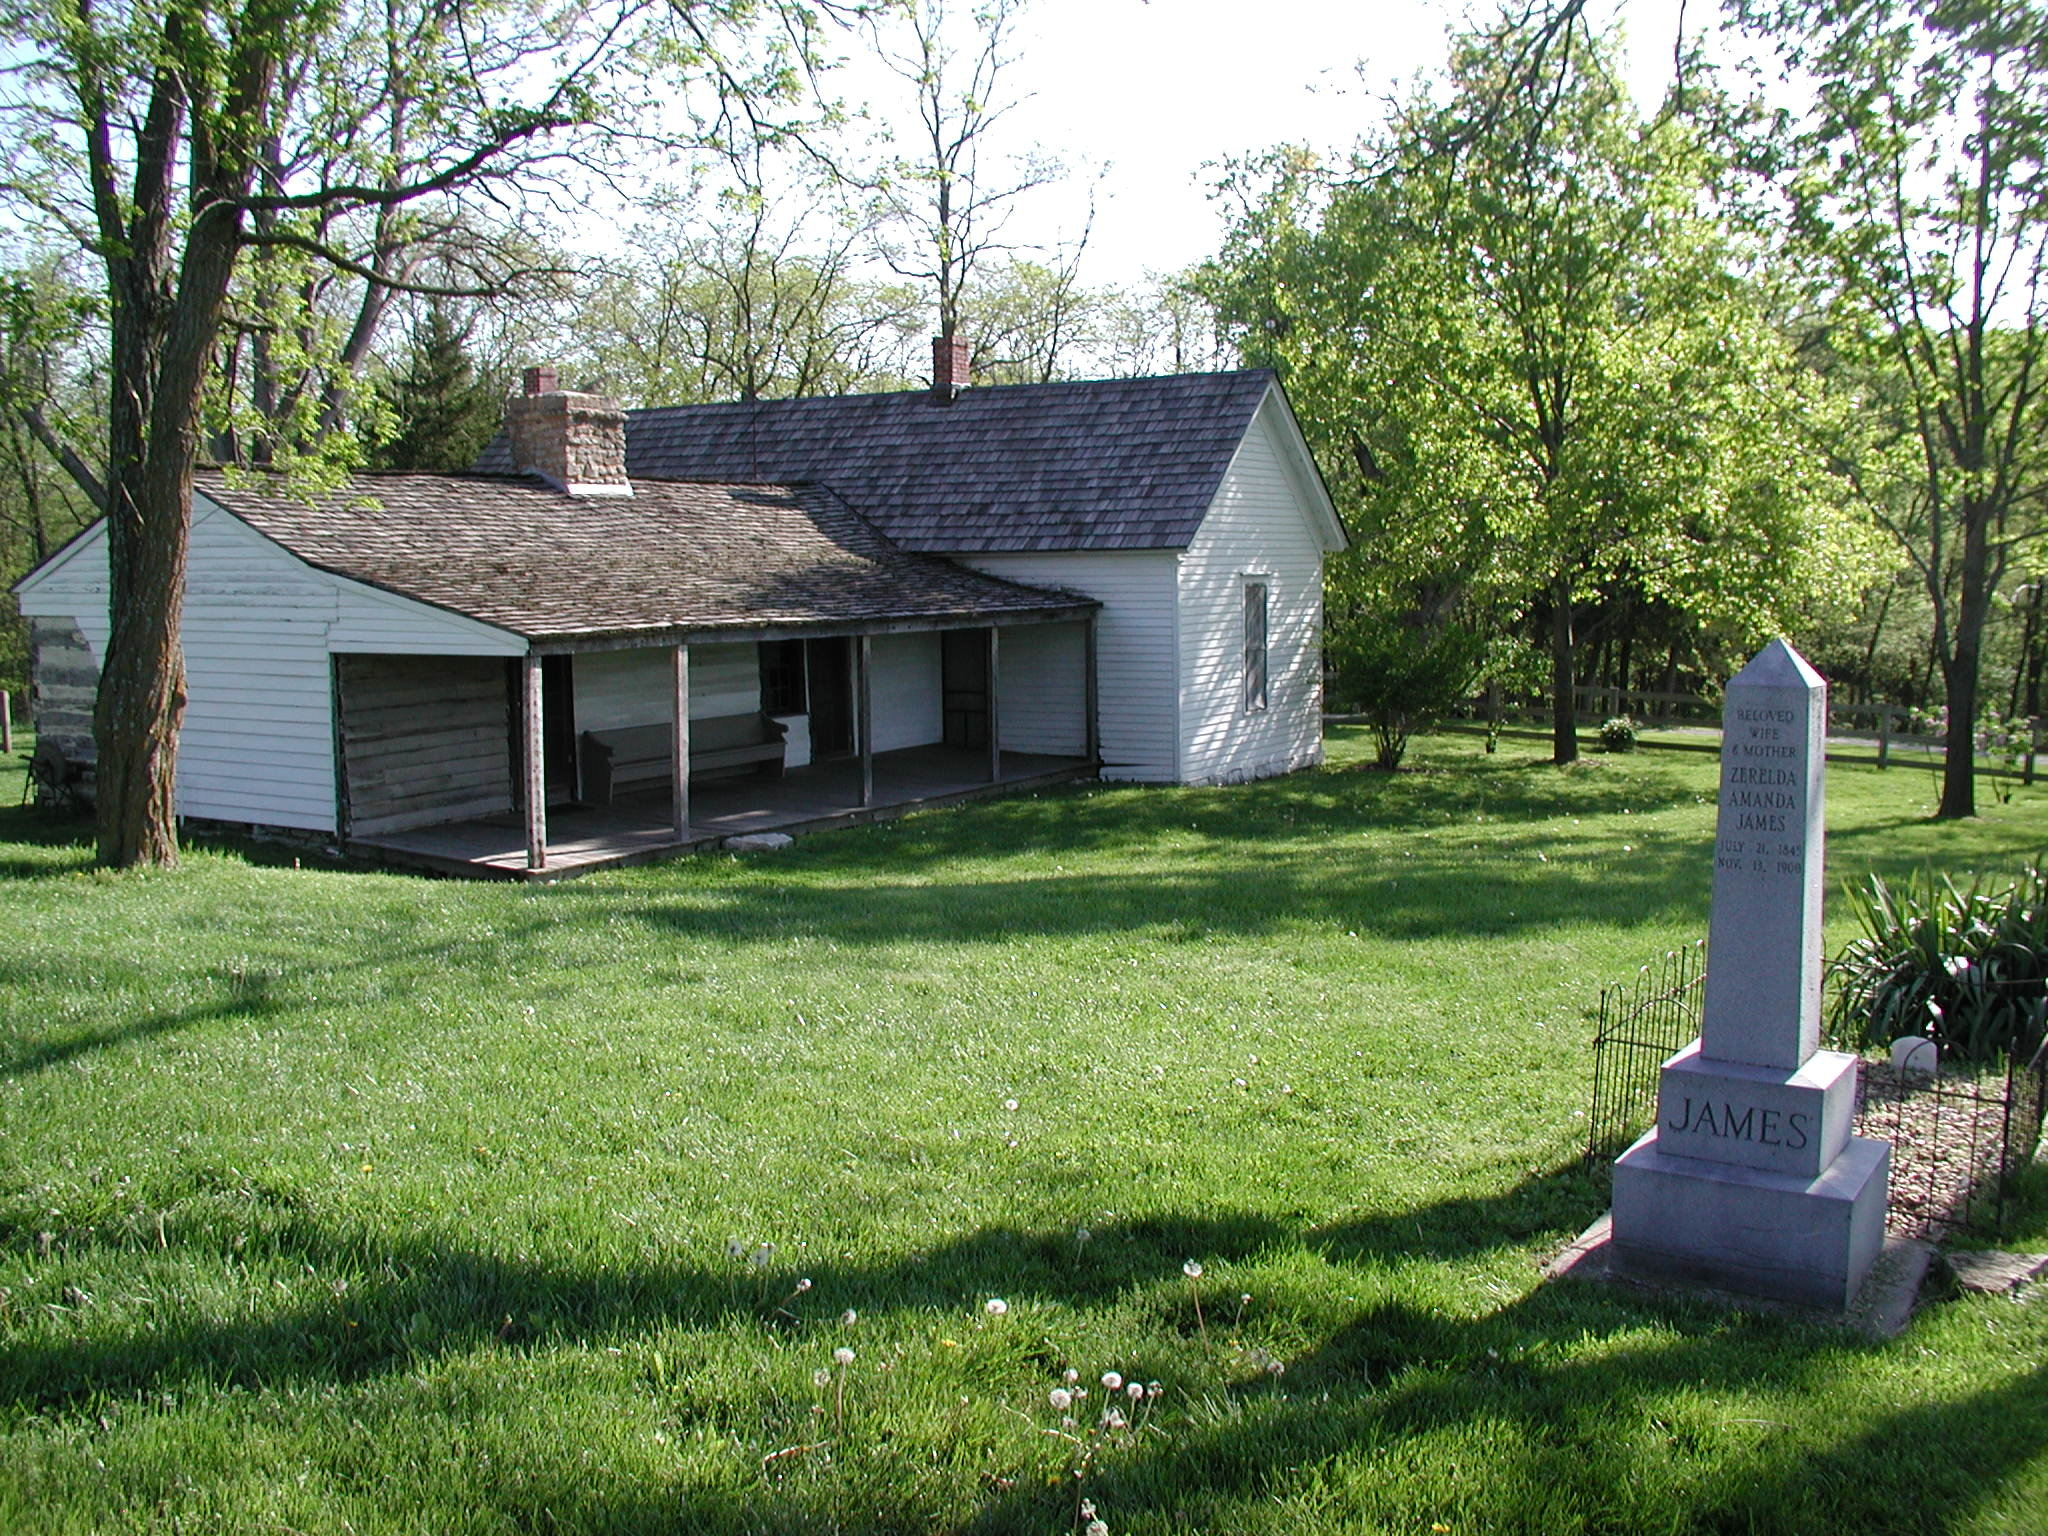 The James Farm, with a replica of Jesse's headstone at the site of his former grave